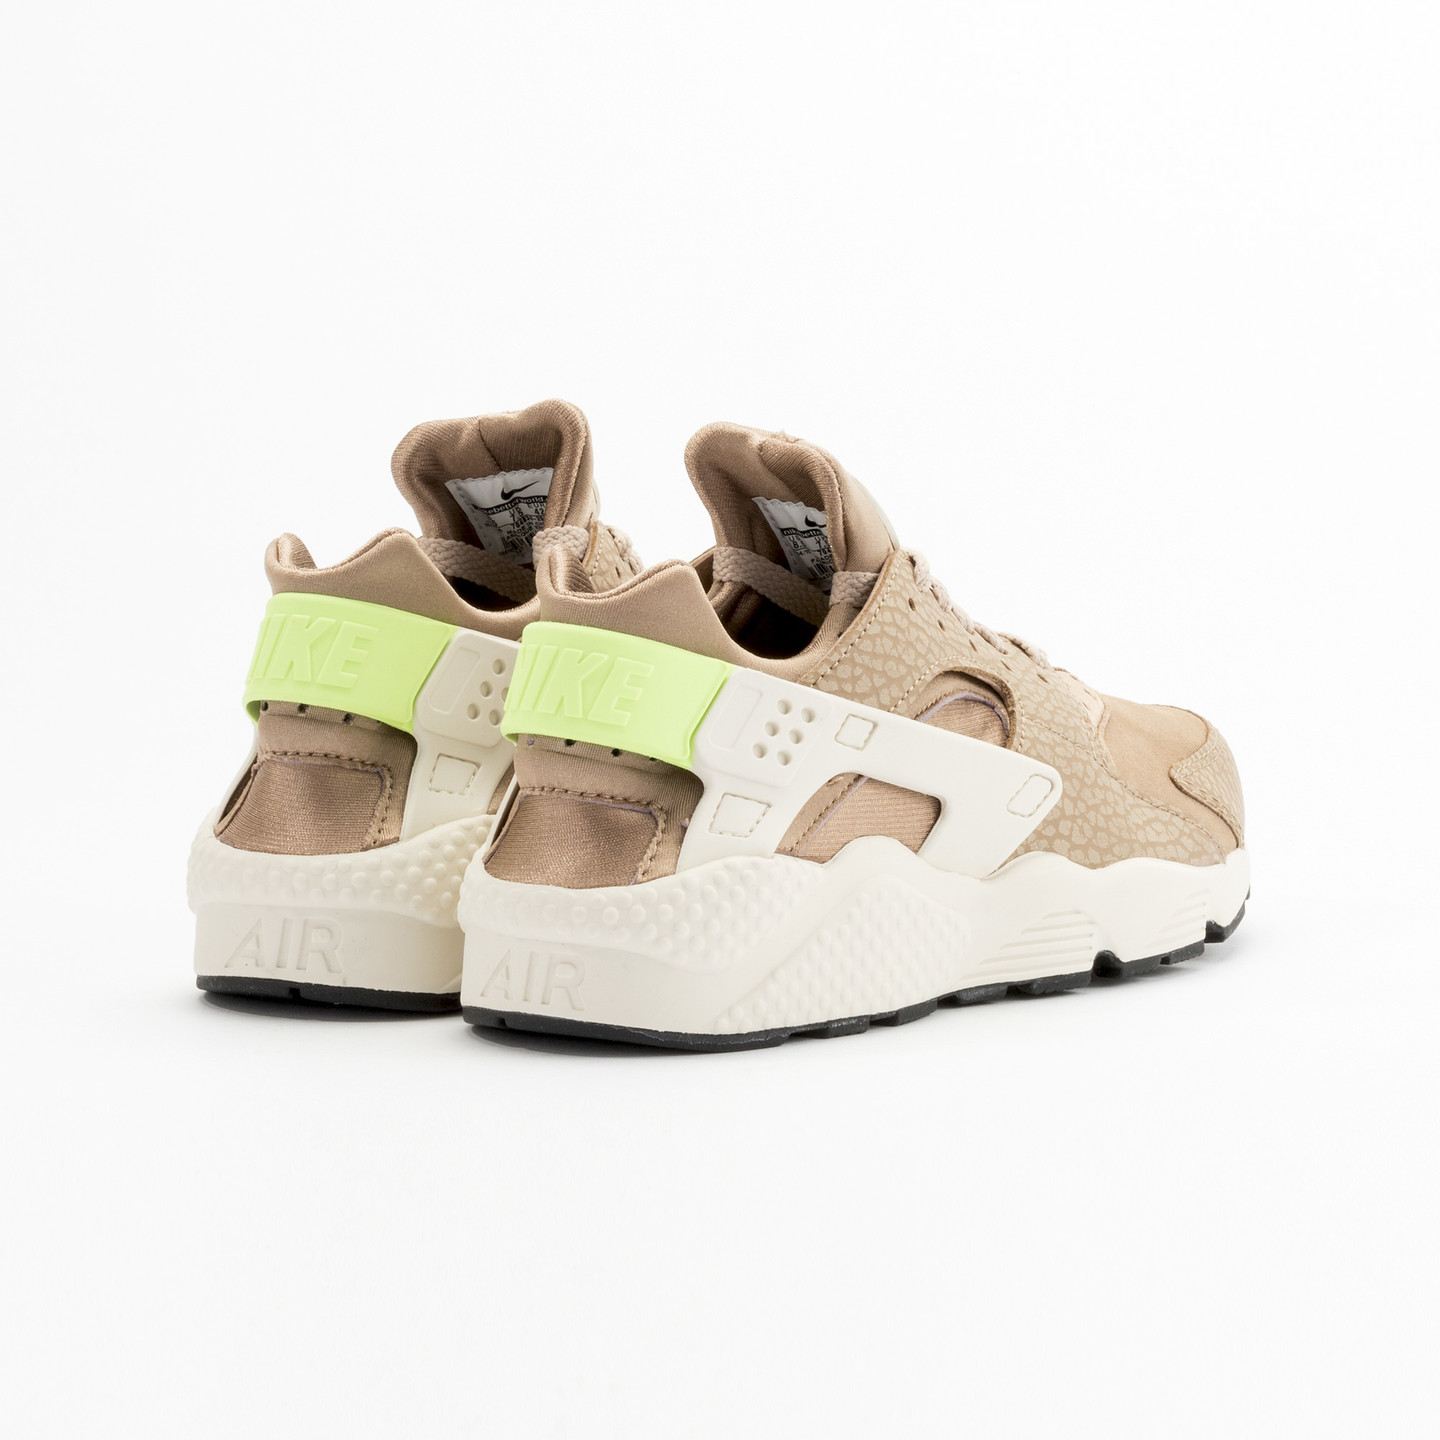 Nike Air Huarache Run Premium Desert Camo / Sea Glass / Ghost Green 704830-203-40.5